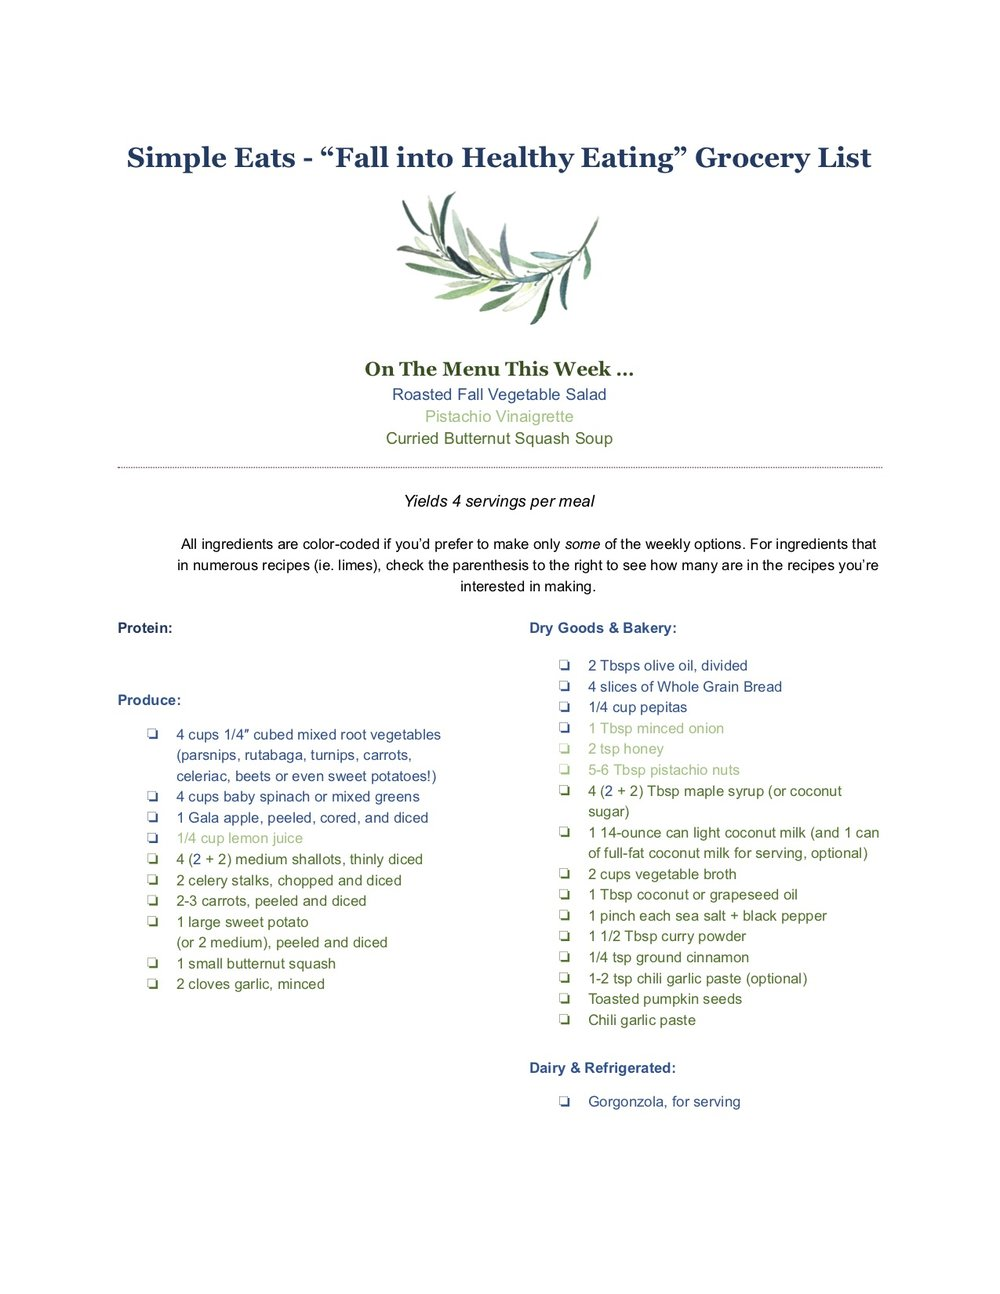 "Simple Eats - ""Fall into Healthy Eating"" Grocery List - Google Docs copy.jpg"